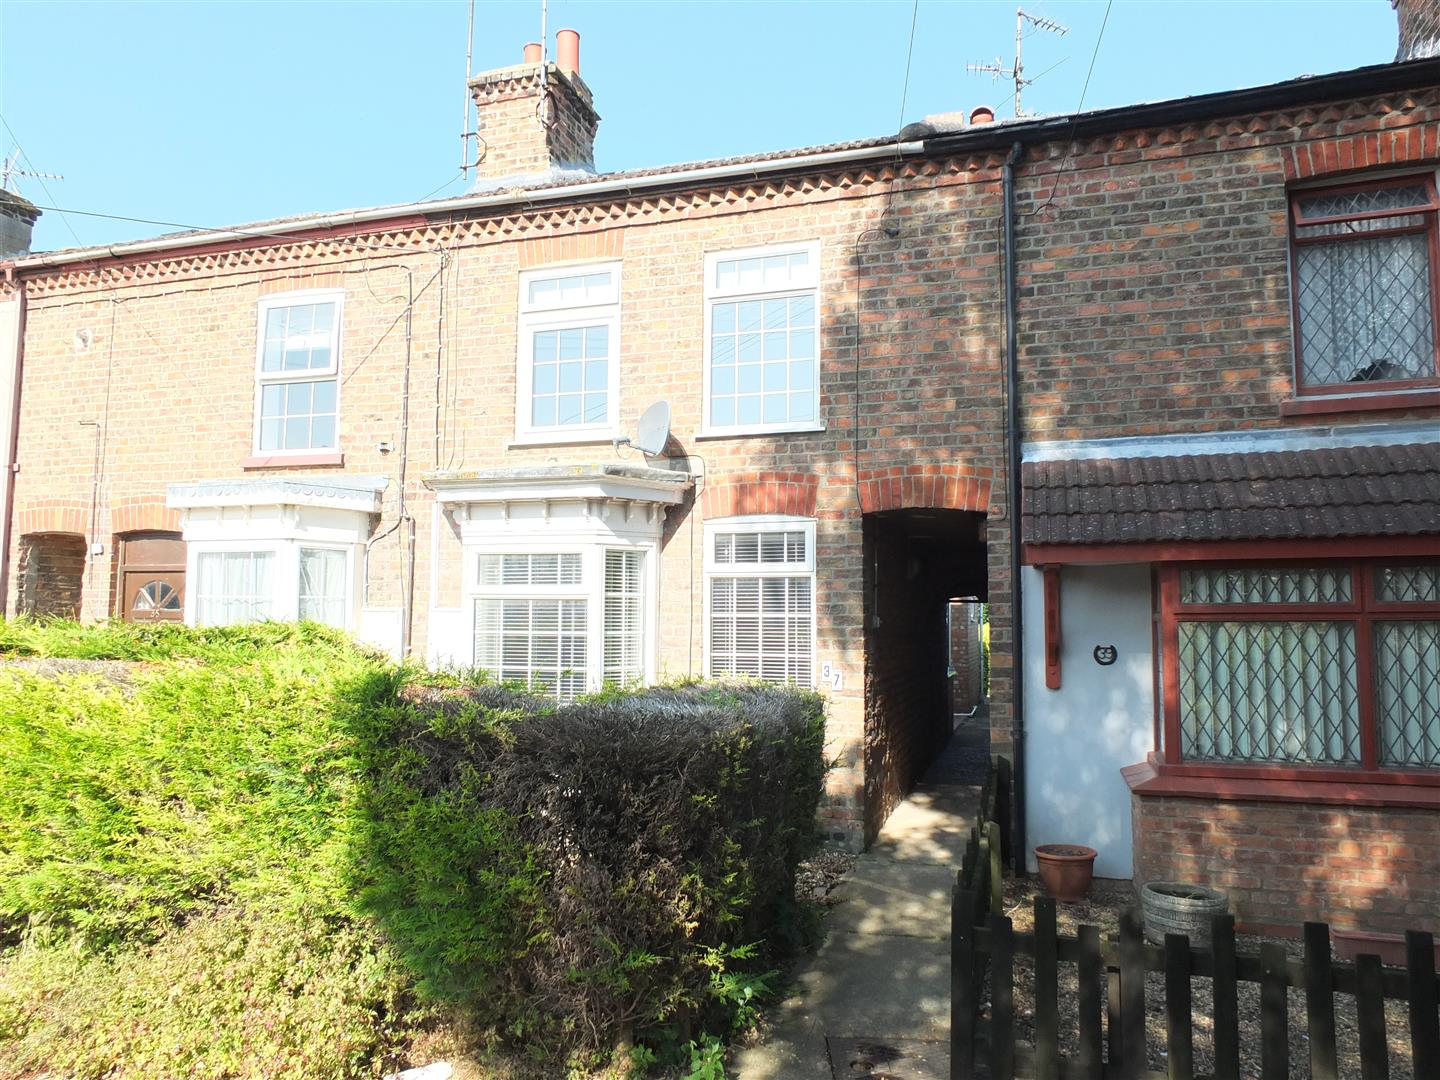 2 bed terraced house to rent in Sutton Bridge Spalding, PE12 9SX - Property Image 1